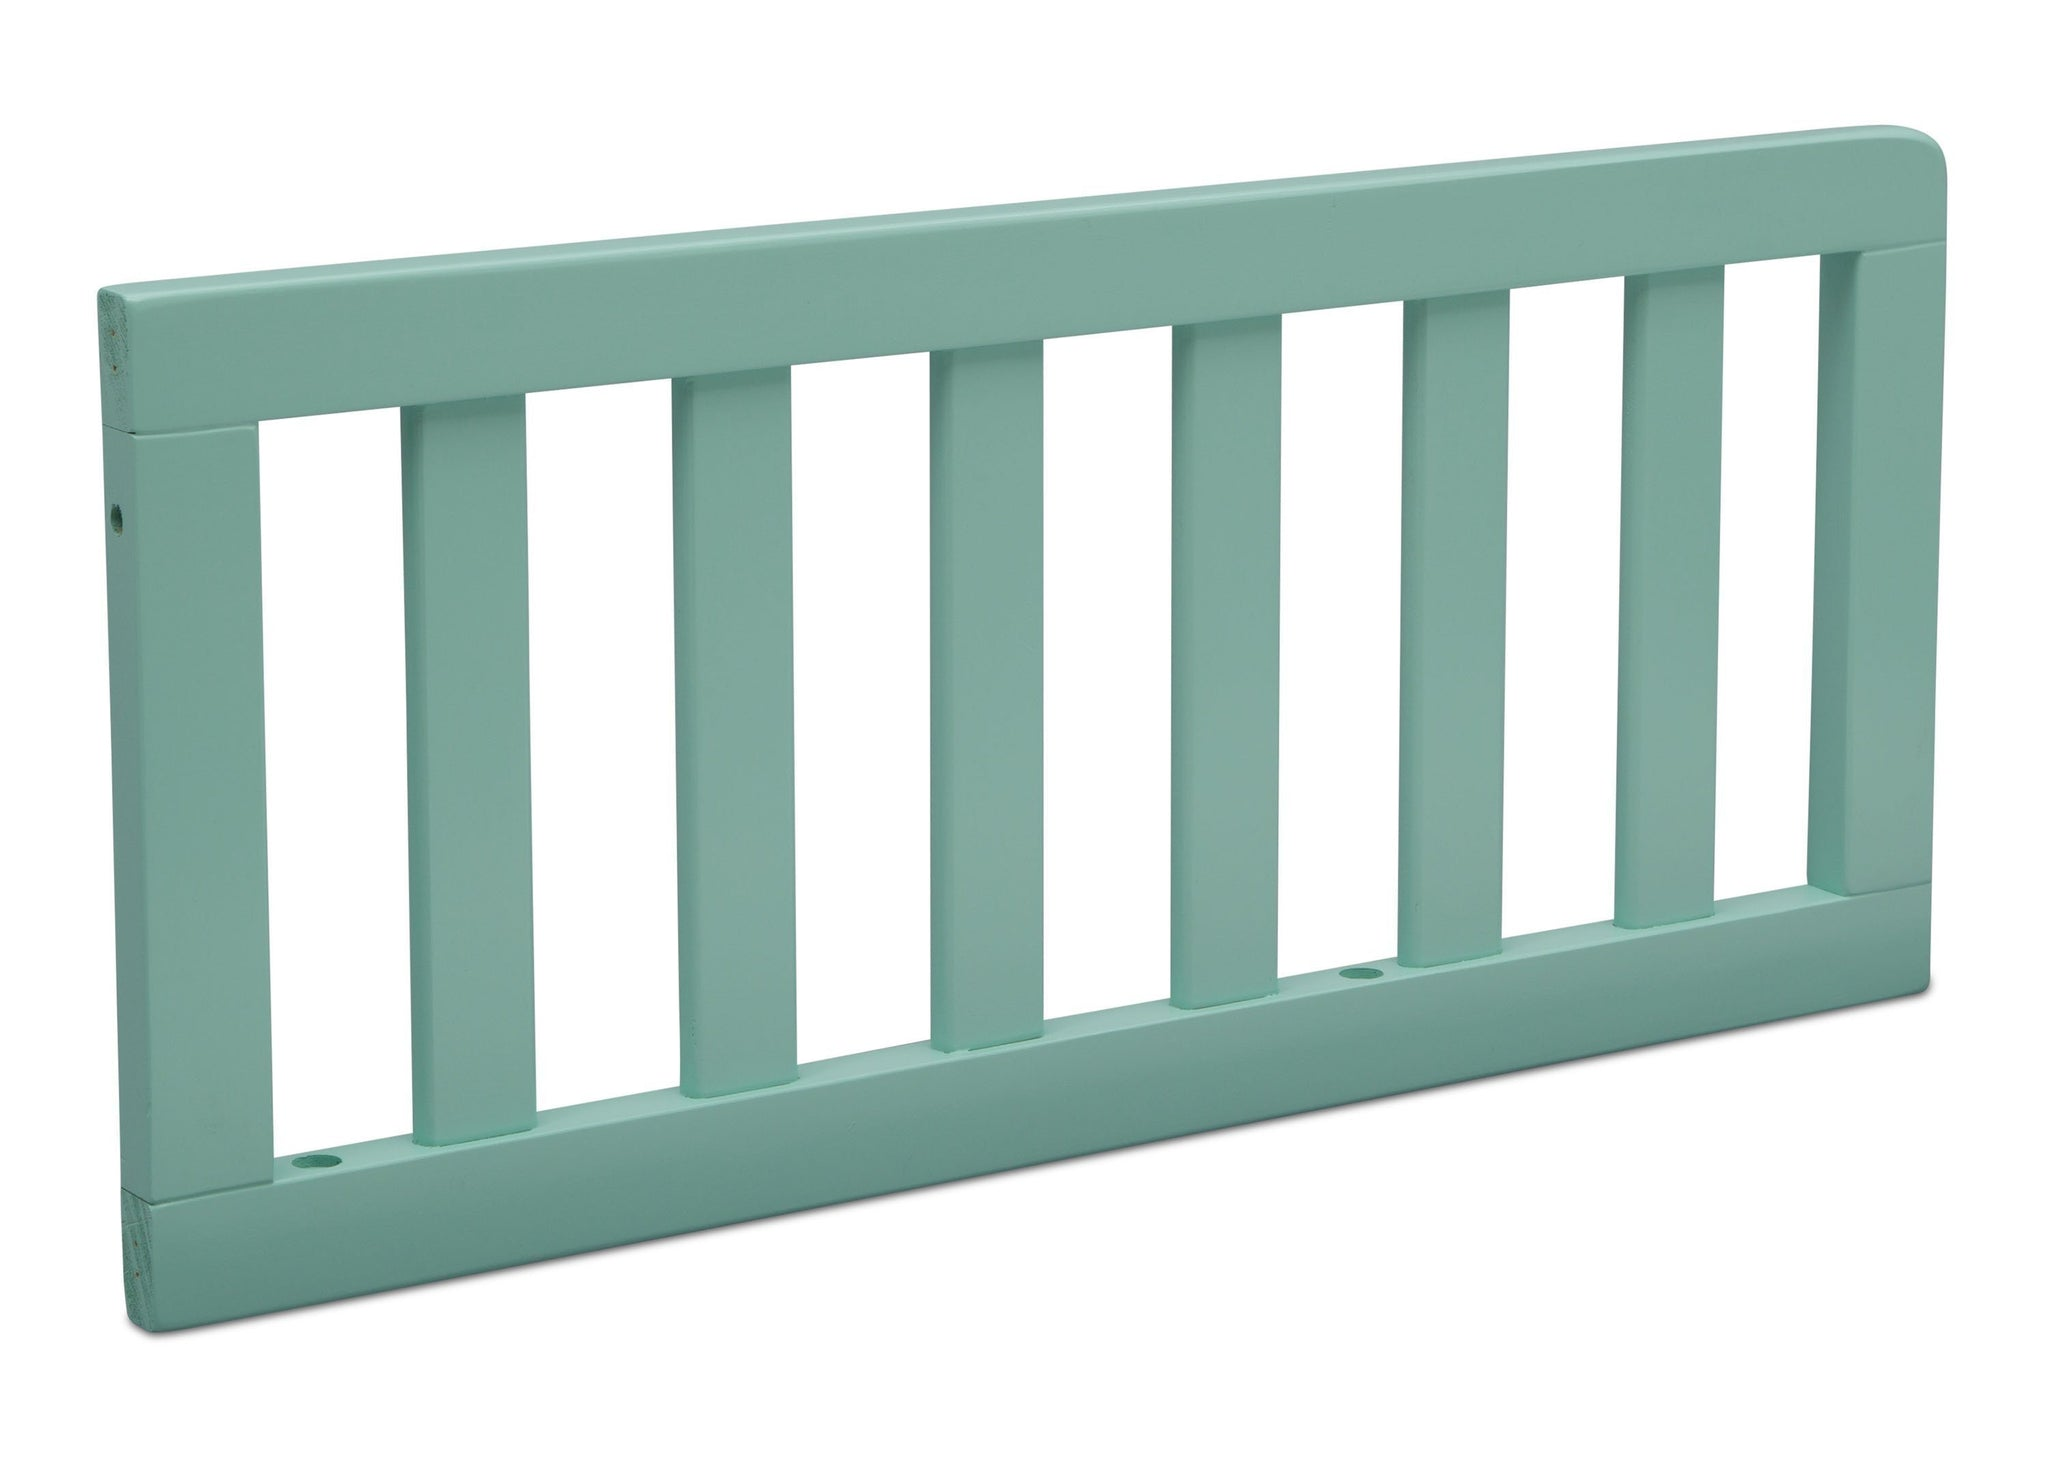 Delta Children Aqua (347) Toddler Guardrail (0080), Angled View bbb2bbb